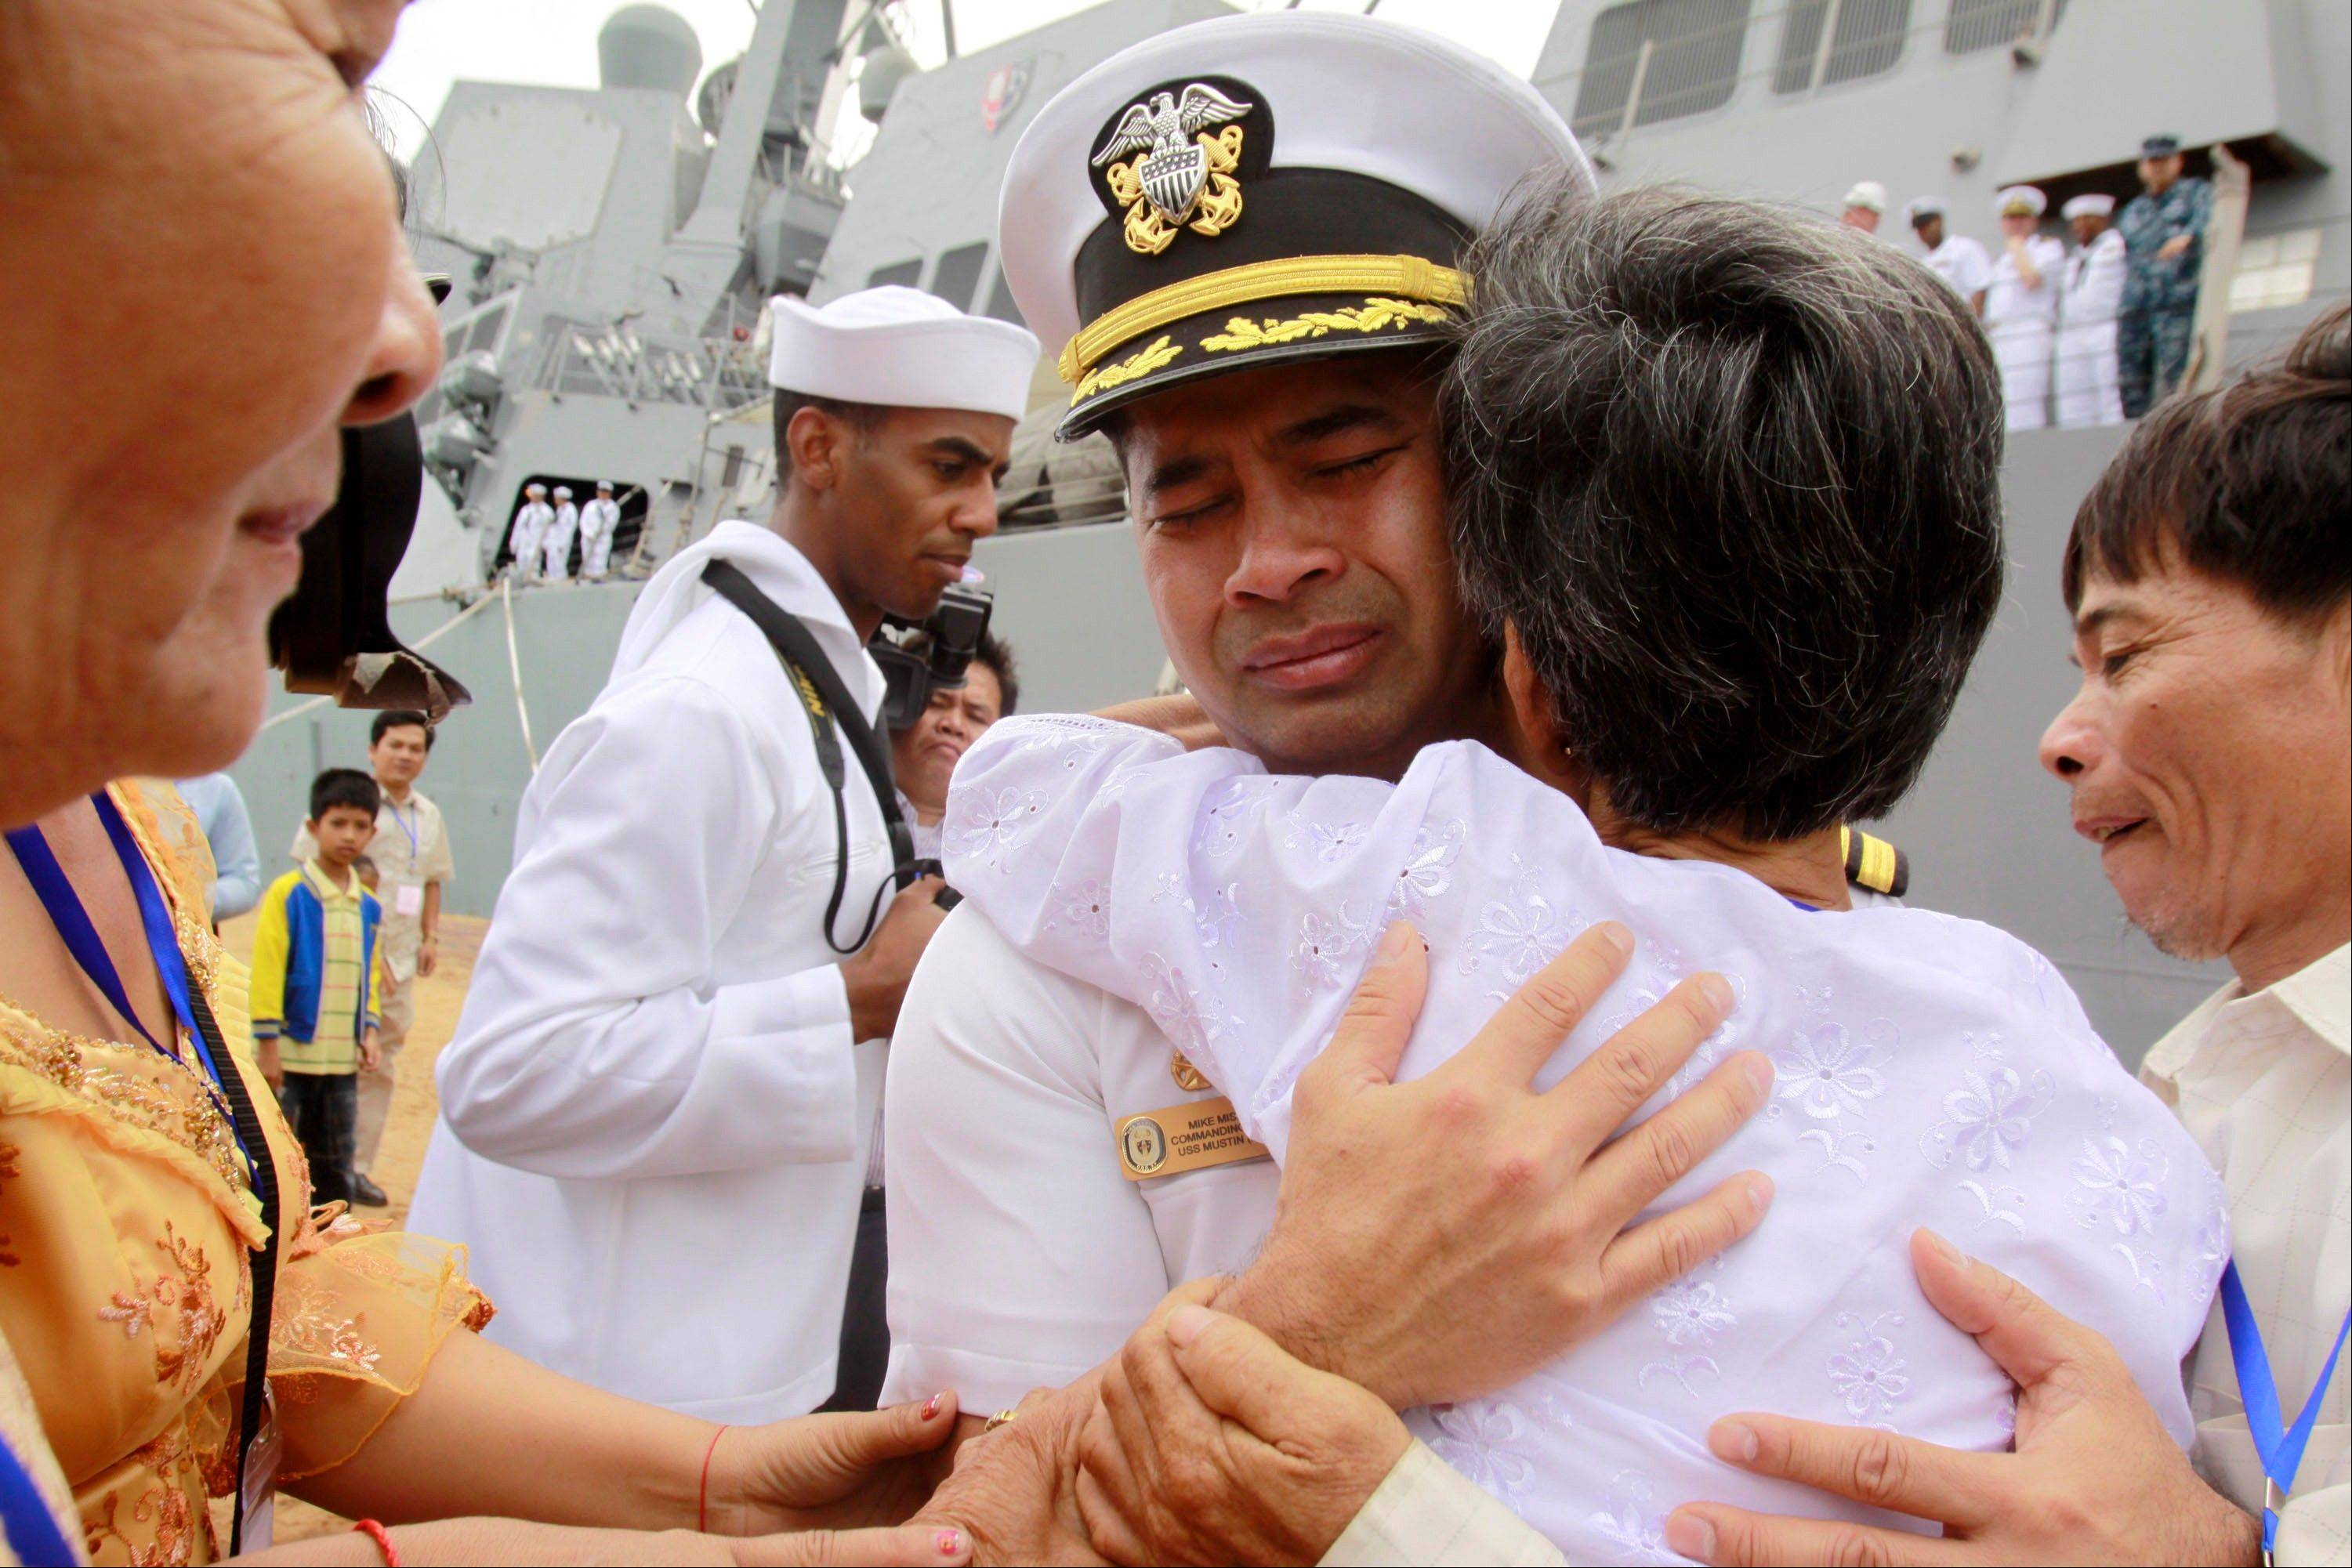 "U.S. navy officer Michael ""Vannak Khem"" Misiewicz becomes emotional as he embraces his aunt Samrith Sokha, 72, at Cambodian coastal international see port of Sihanoukville, Cambodia in 2010. Misiewicz passed confidential information on ship routes to Malaysian businessman Leonard Francis' Singapore-based company, Glenn Defense Marine Asia Ltd., or GDMA, according to the court documents."